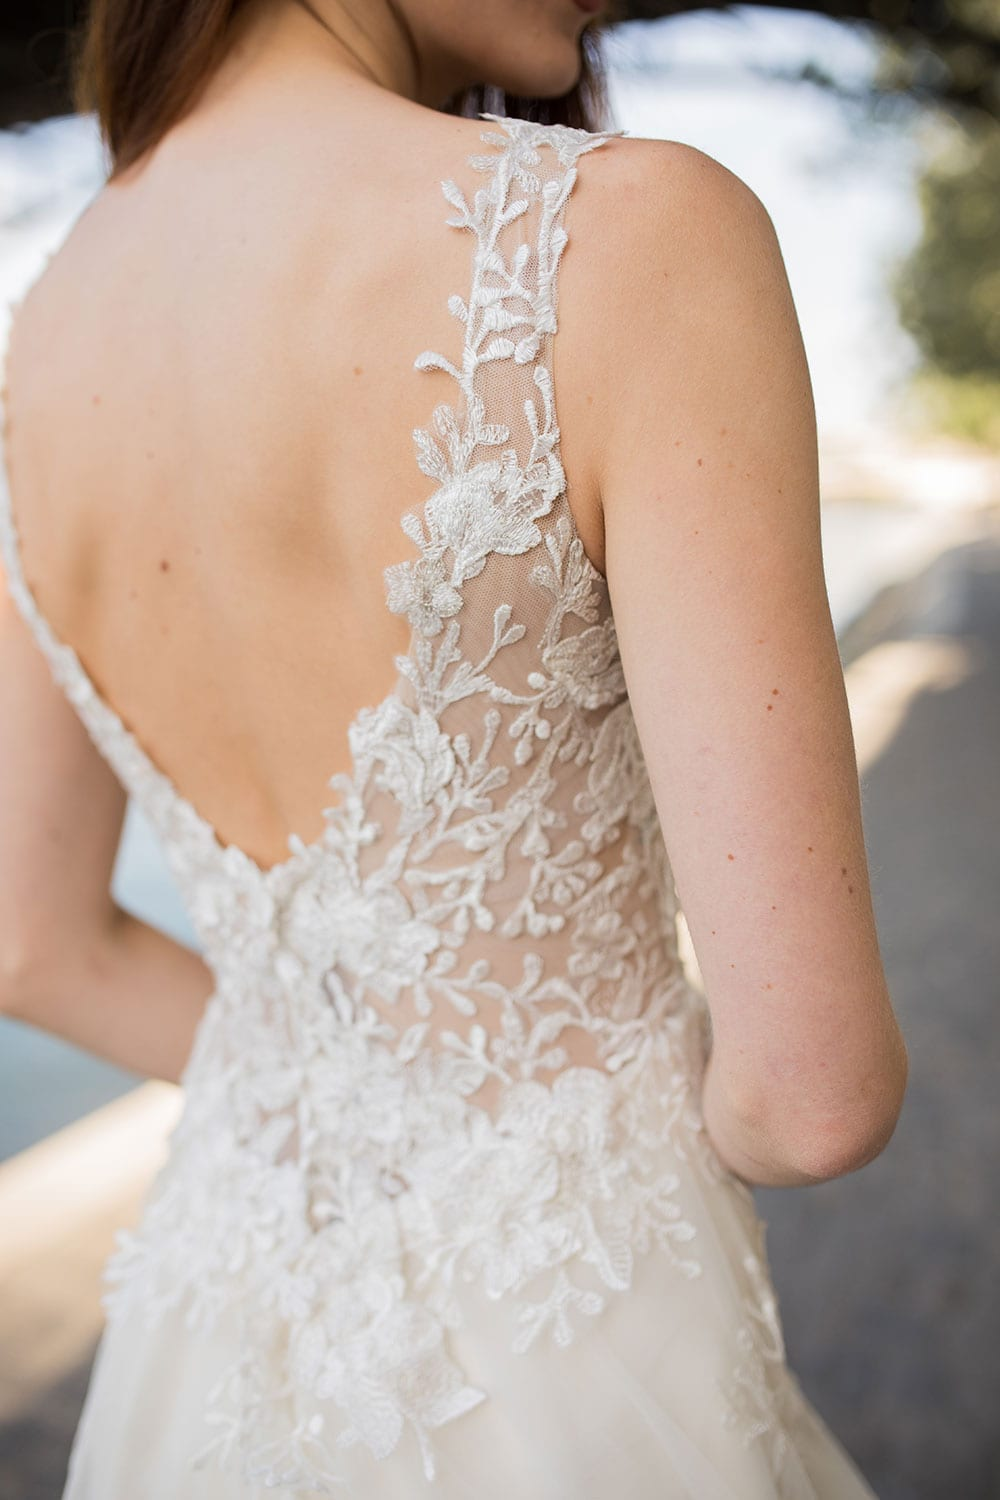 Model wearing Vinka Design Delta Wedding Dress, a Sheer Embroidered Lace Wedding Gown close up showing low back next to the Seine in Paris